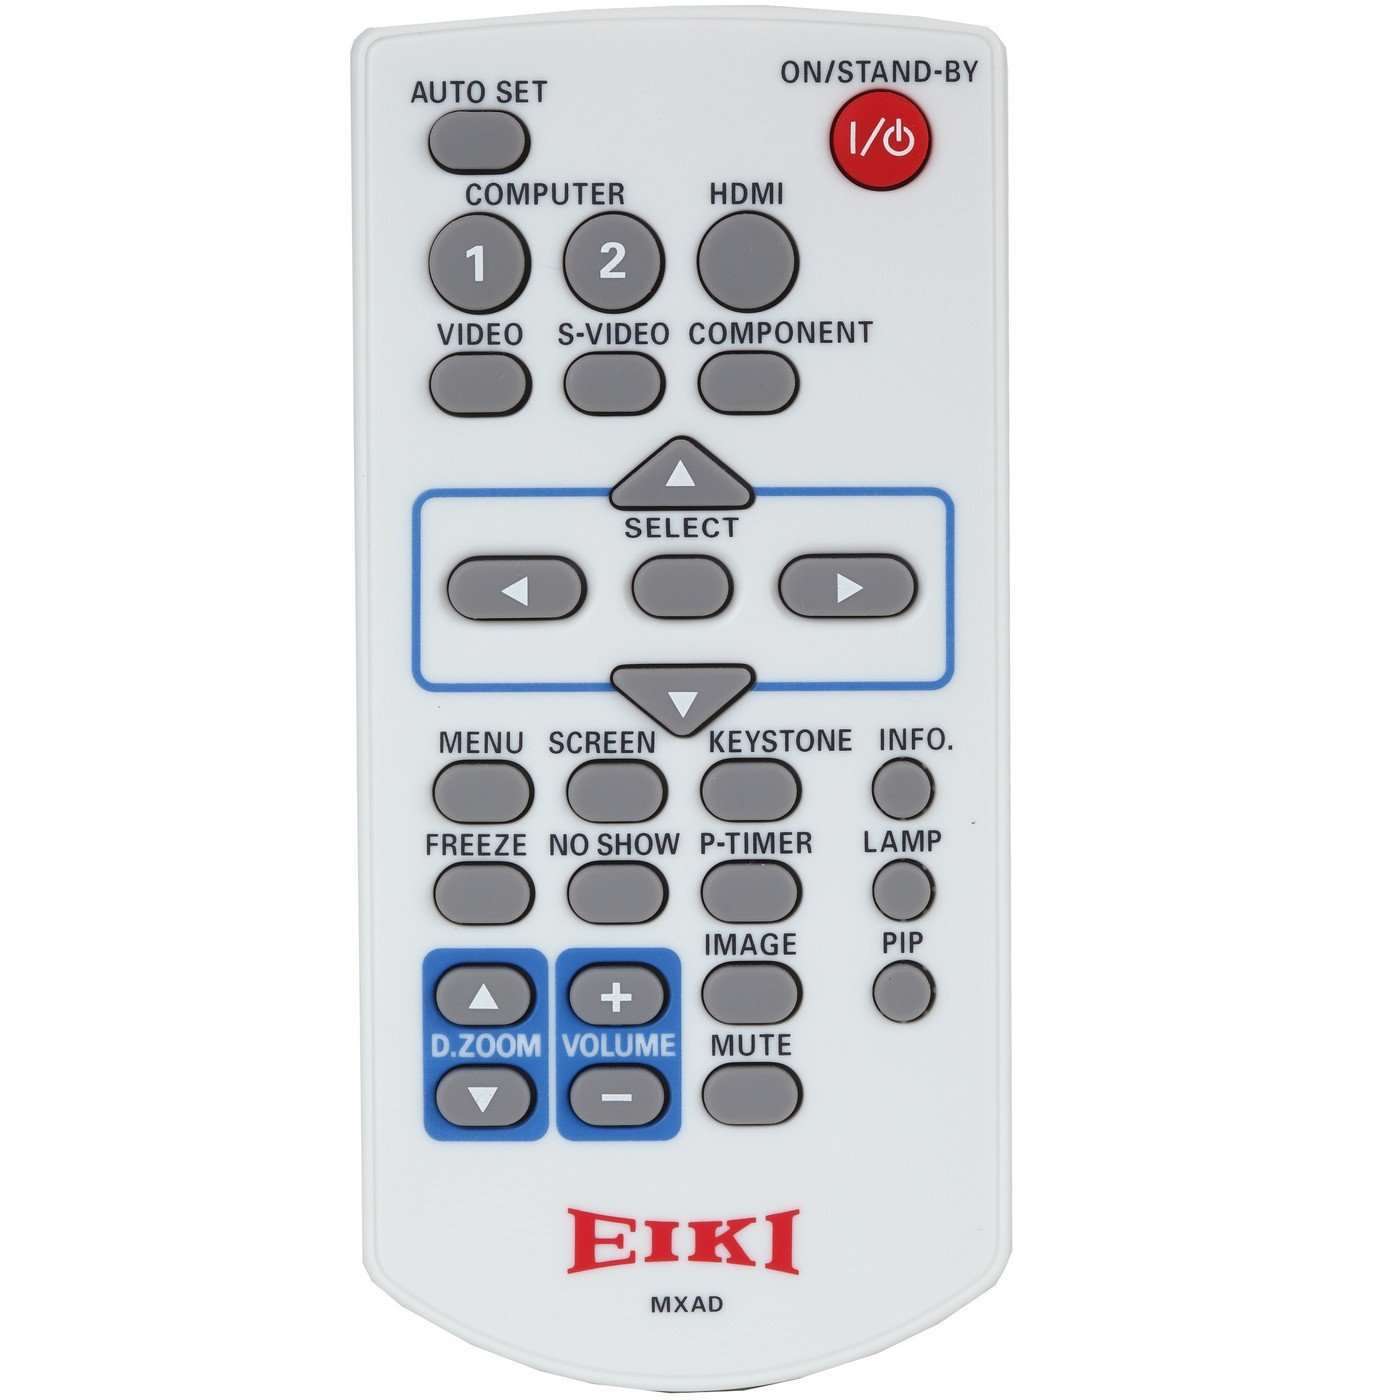 Eiki 645 099 3206 | Infrared Only Projector Remote for LC-WB200A LC-WB200 LC-WB200W LC-WB100 No Mouse Function